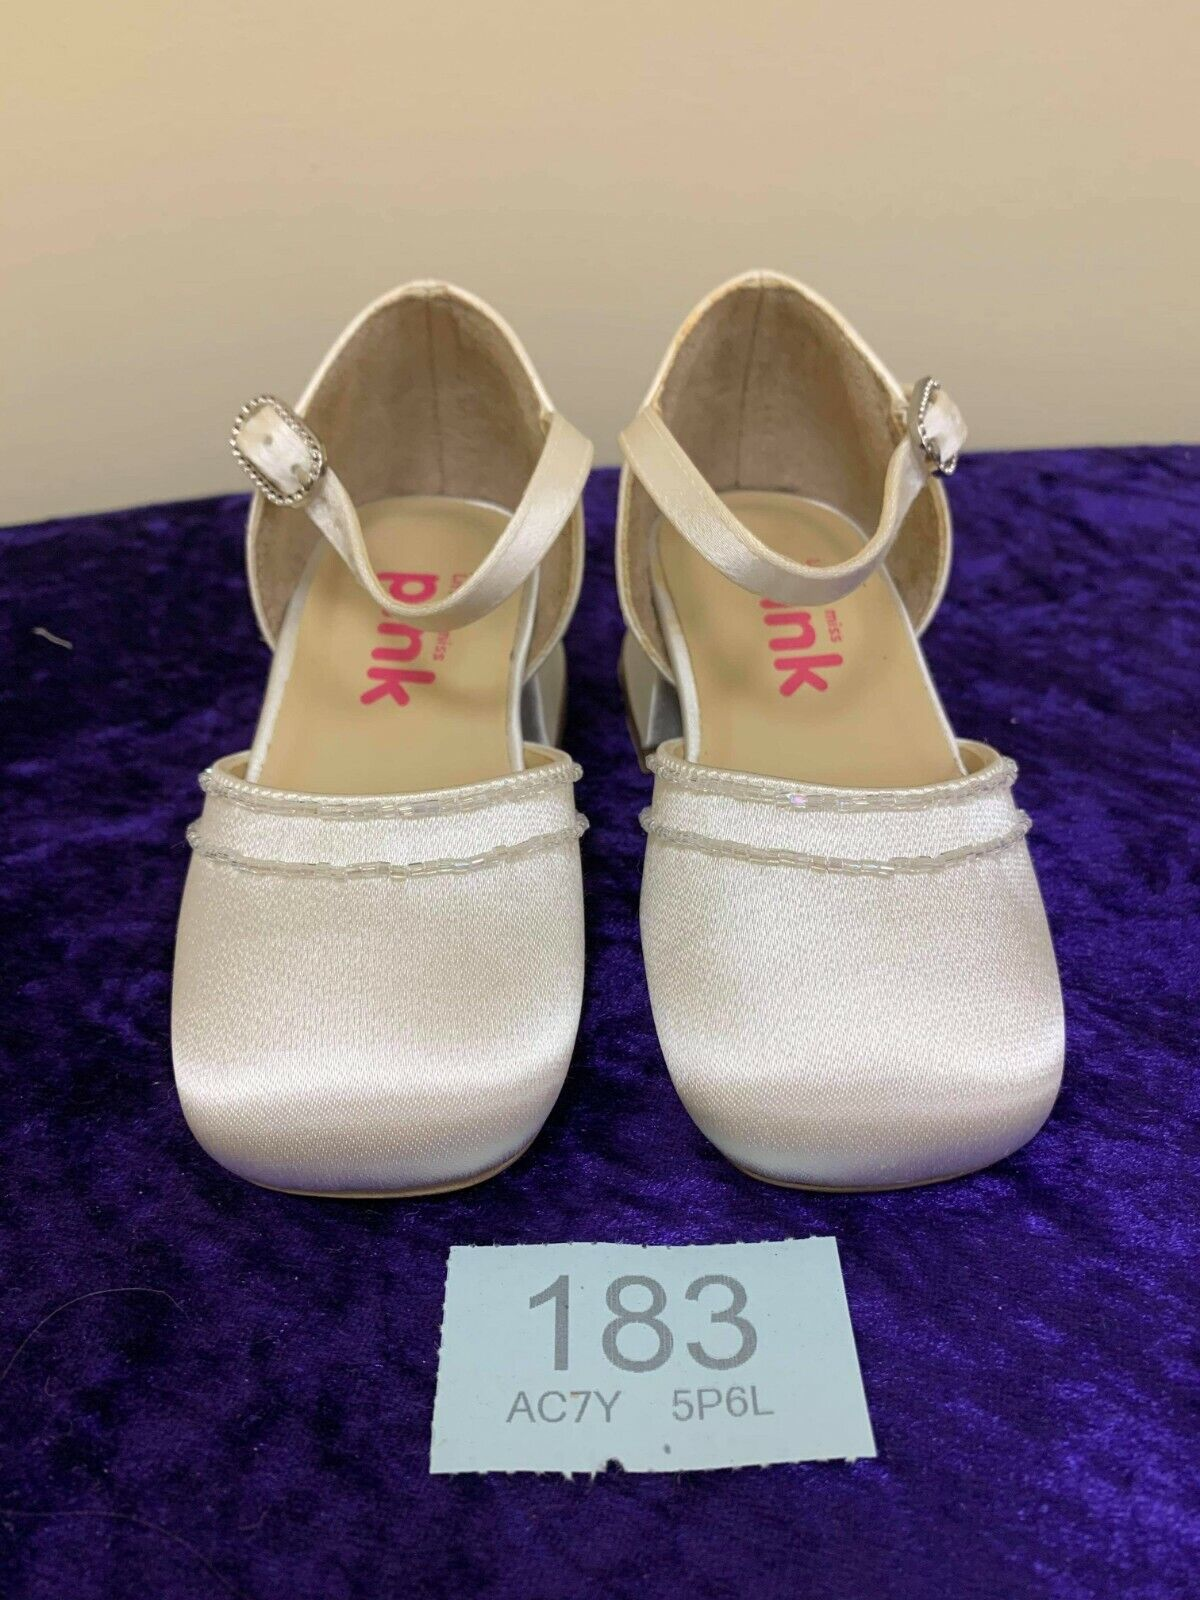 New Children's wedding party shoes Size 25 ivory satin code 183 style Sweet Pea